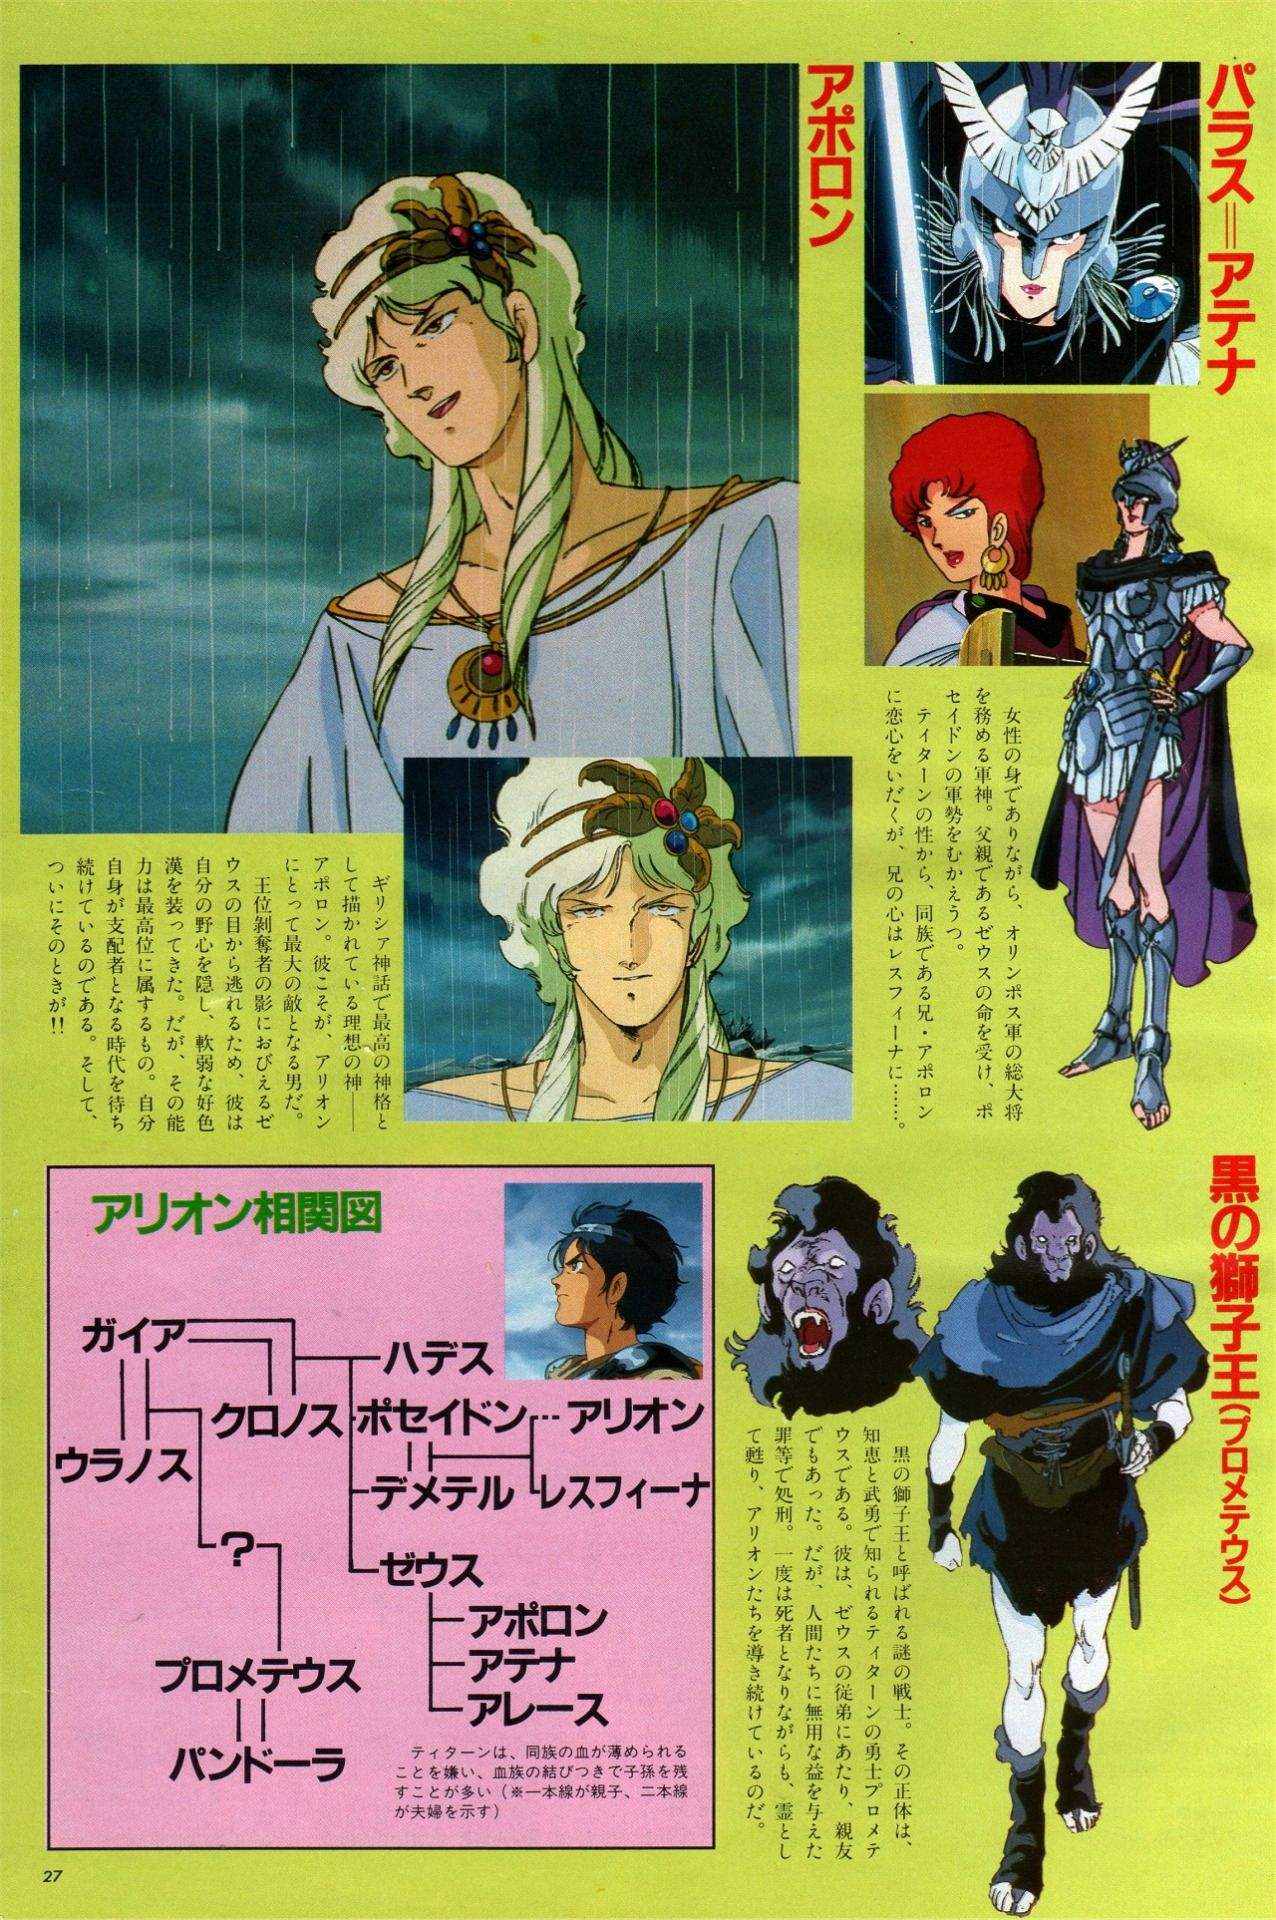 Special Arion article in the October 1985 issue of Animage, focusing on the gods and goddesses.